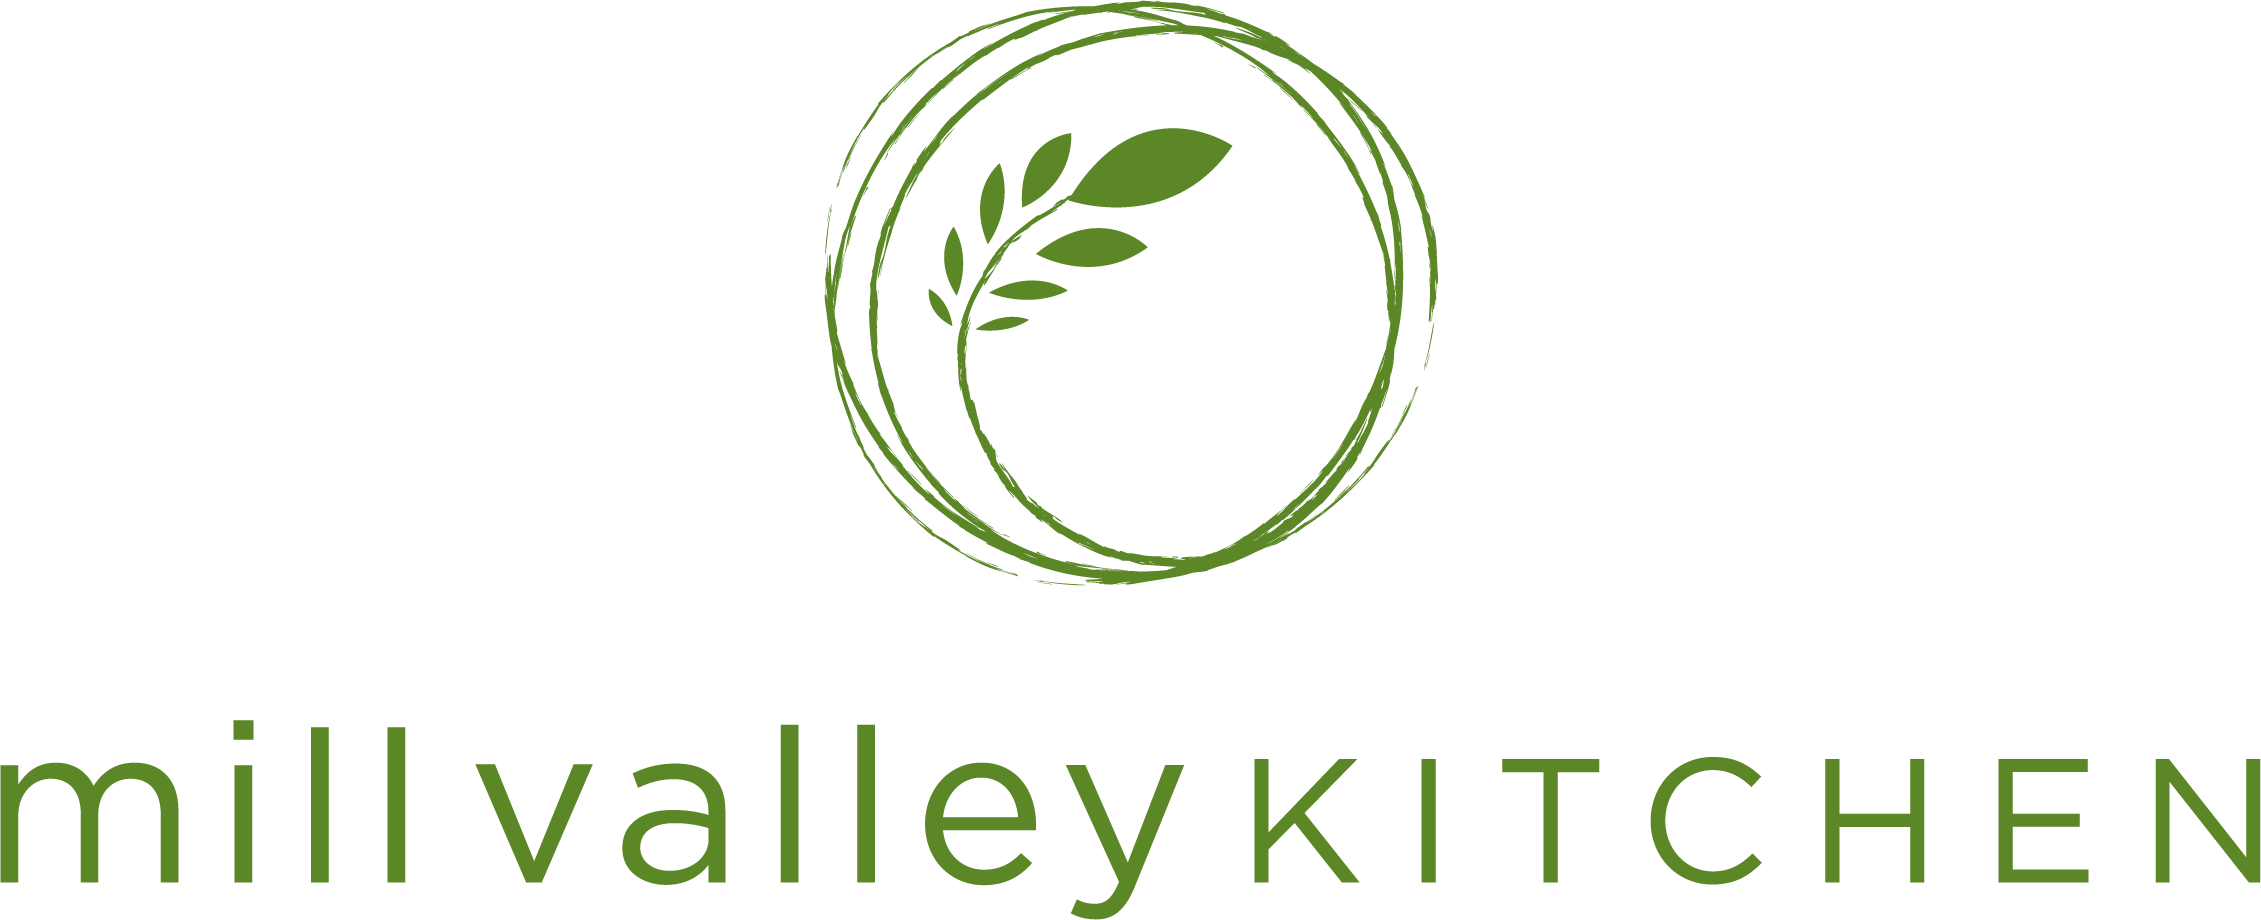 Mill Valley Kitchen logo